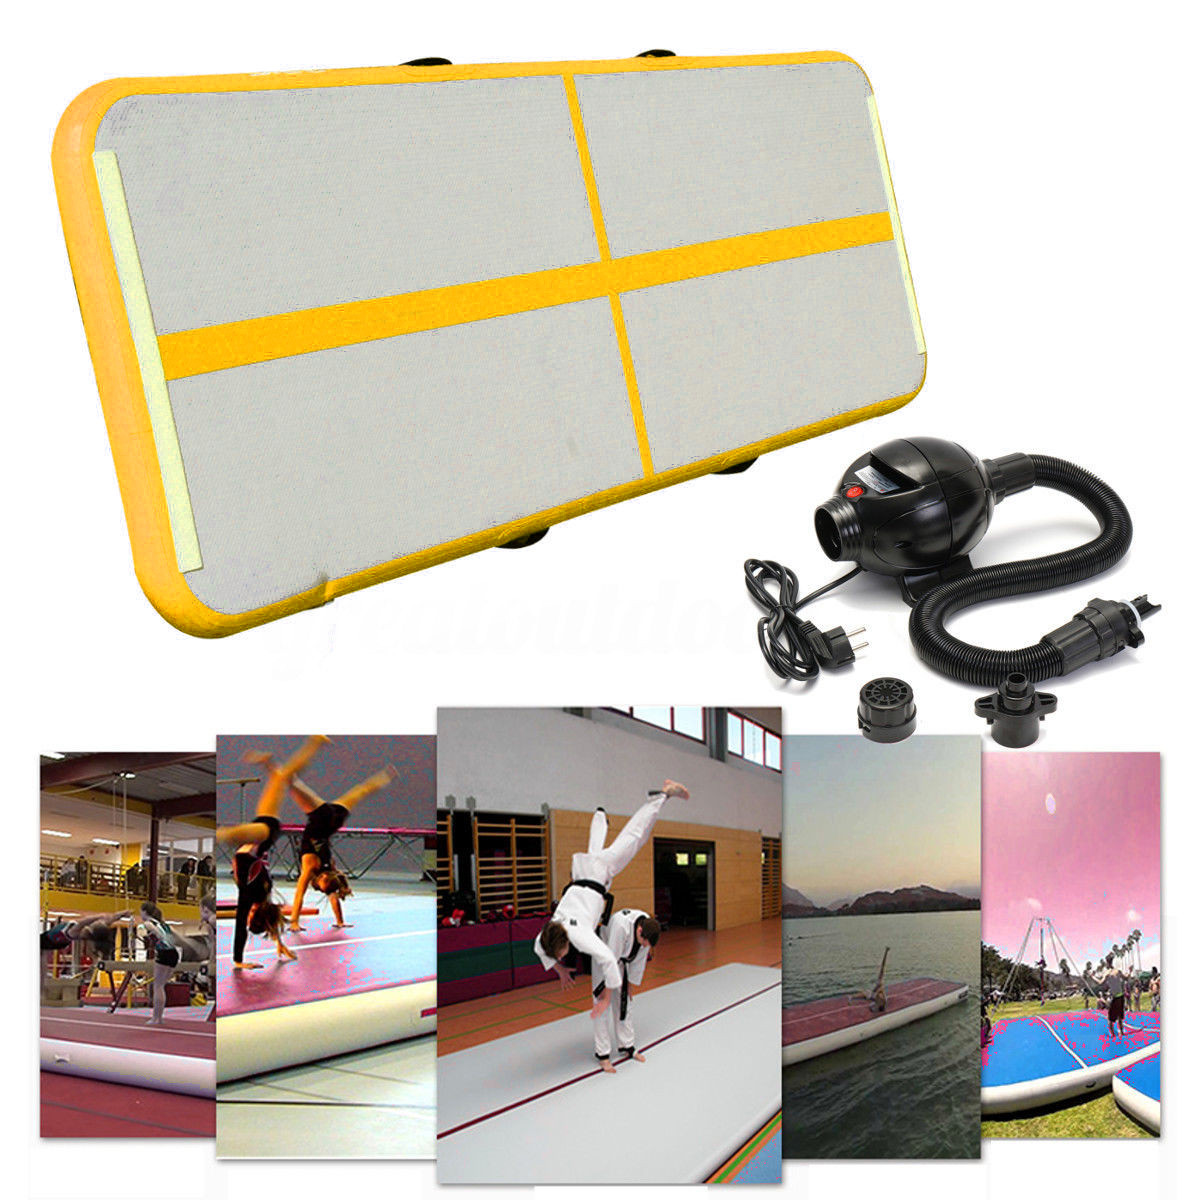 Yellow Gofun AirTrack 90x300x10cm Air Mats Sport Exercise Pad Inflatable Tumbling Track Gymnastics Training Pad With Air Pump